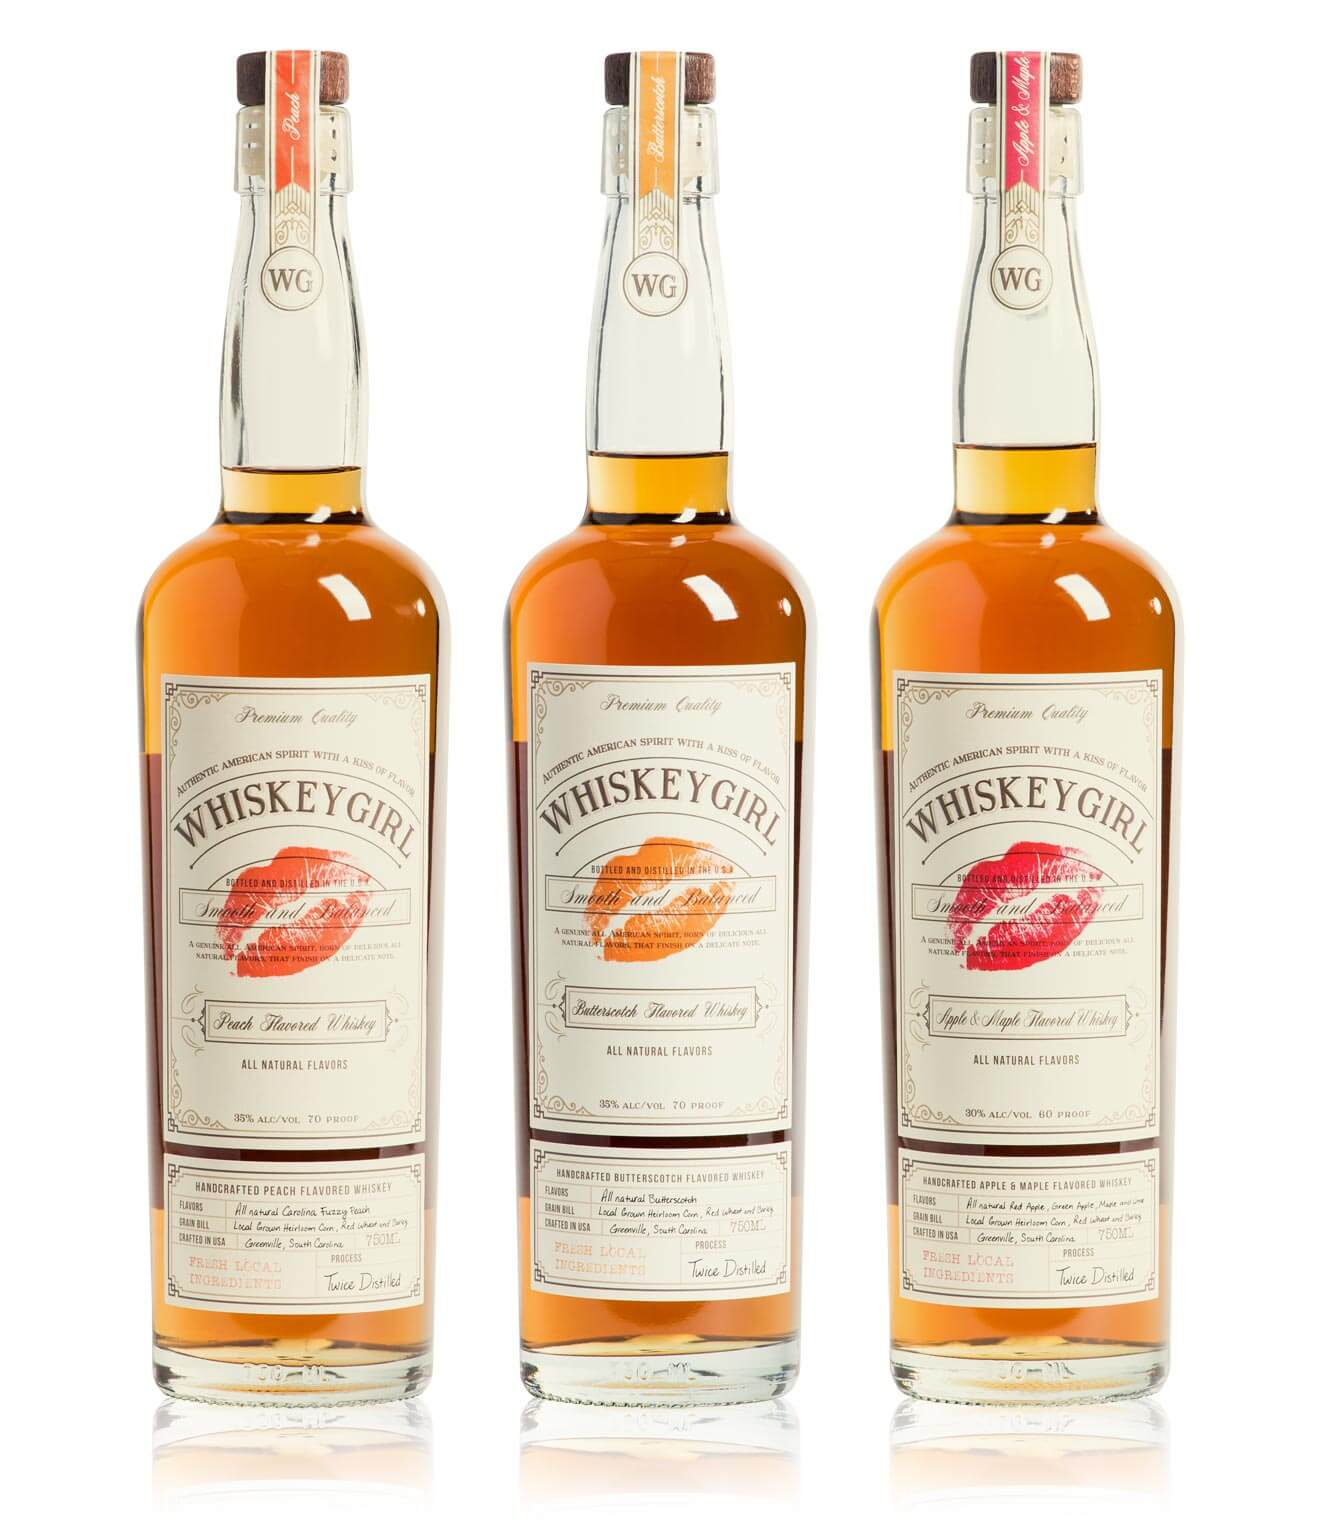 Various flavors of Whiskey Girl whiskies, bottles, what's chilling right now